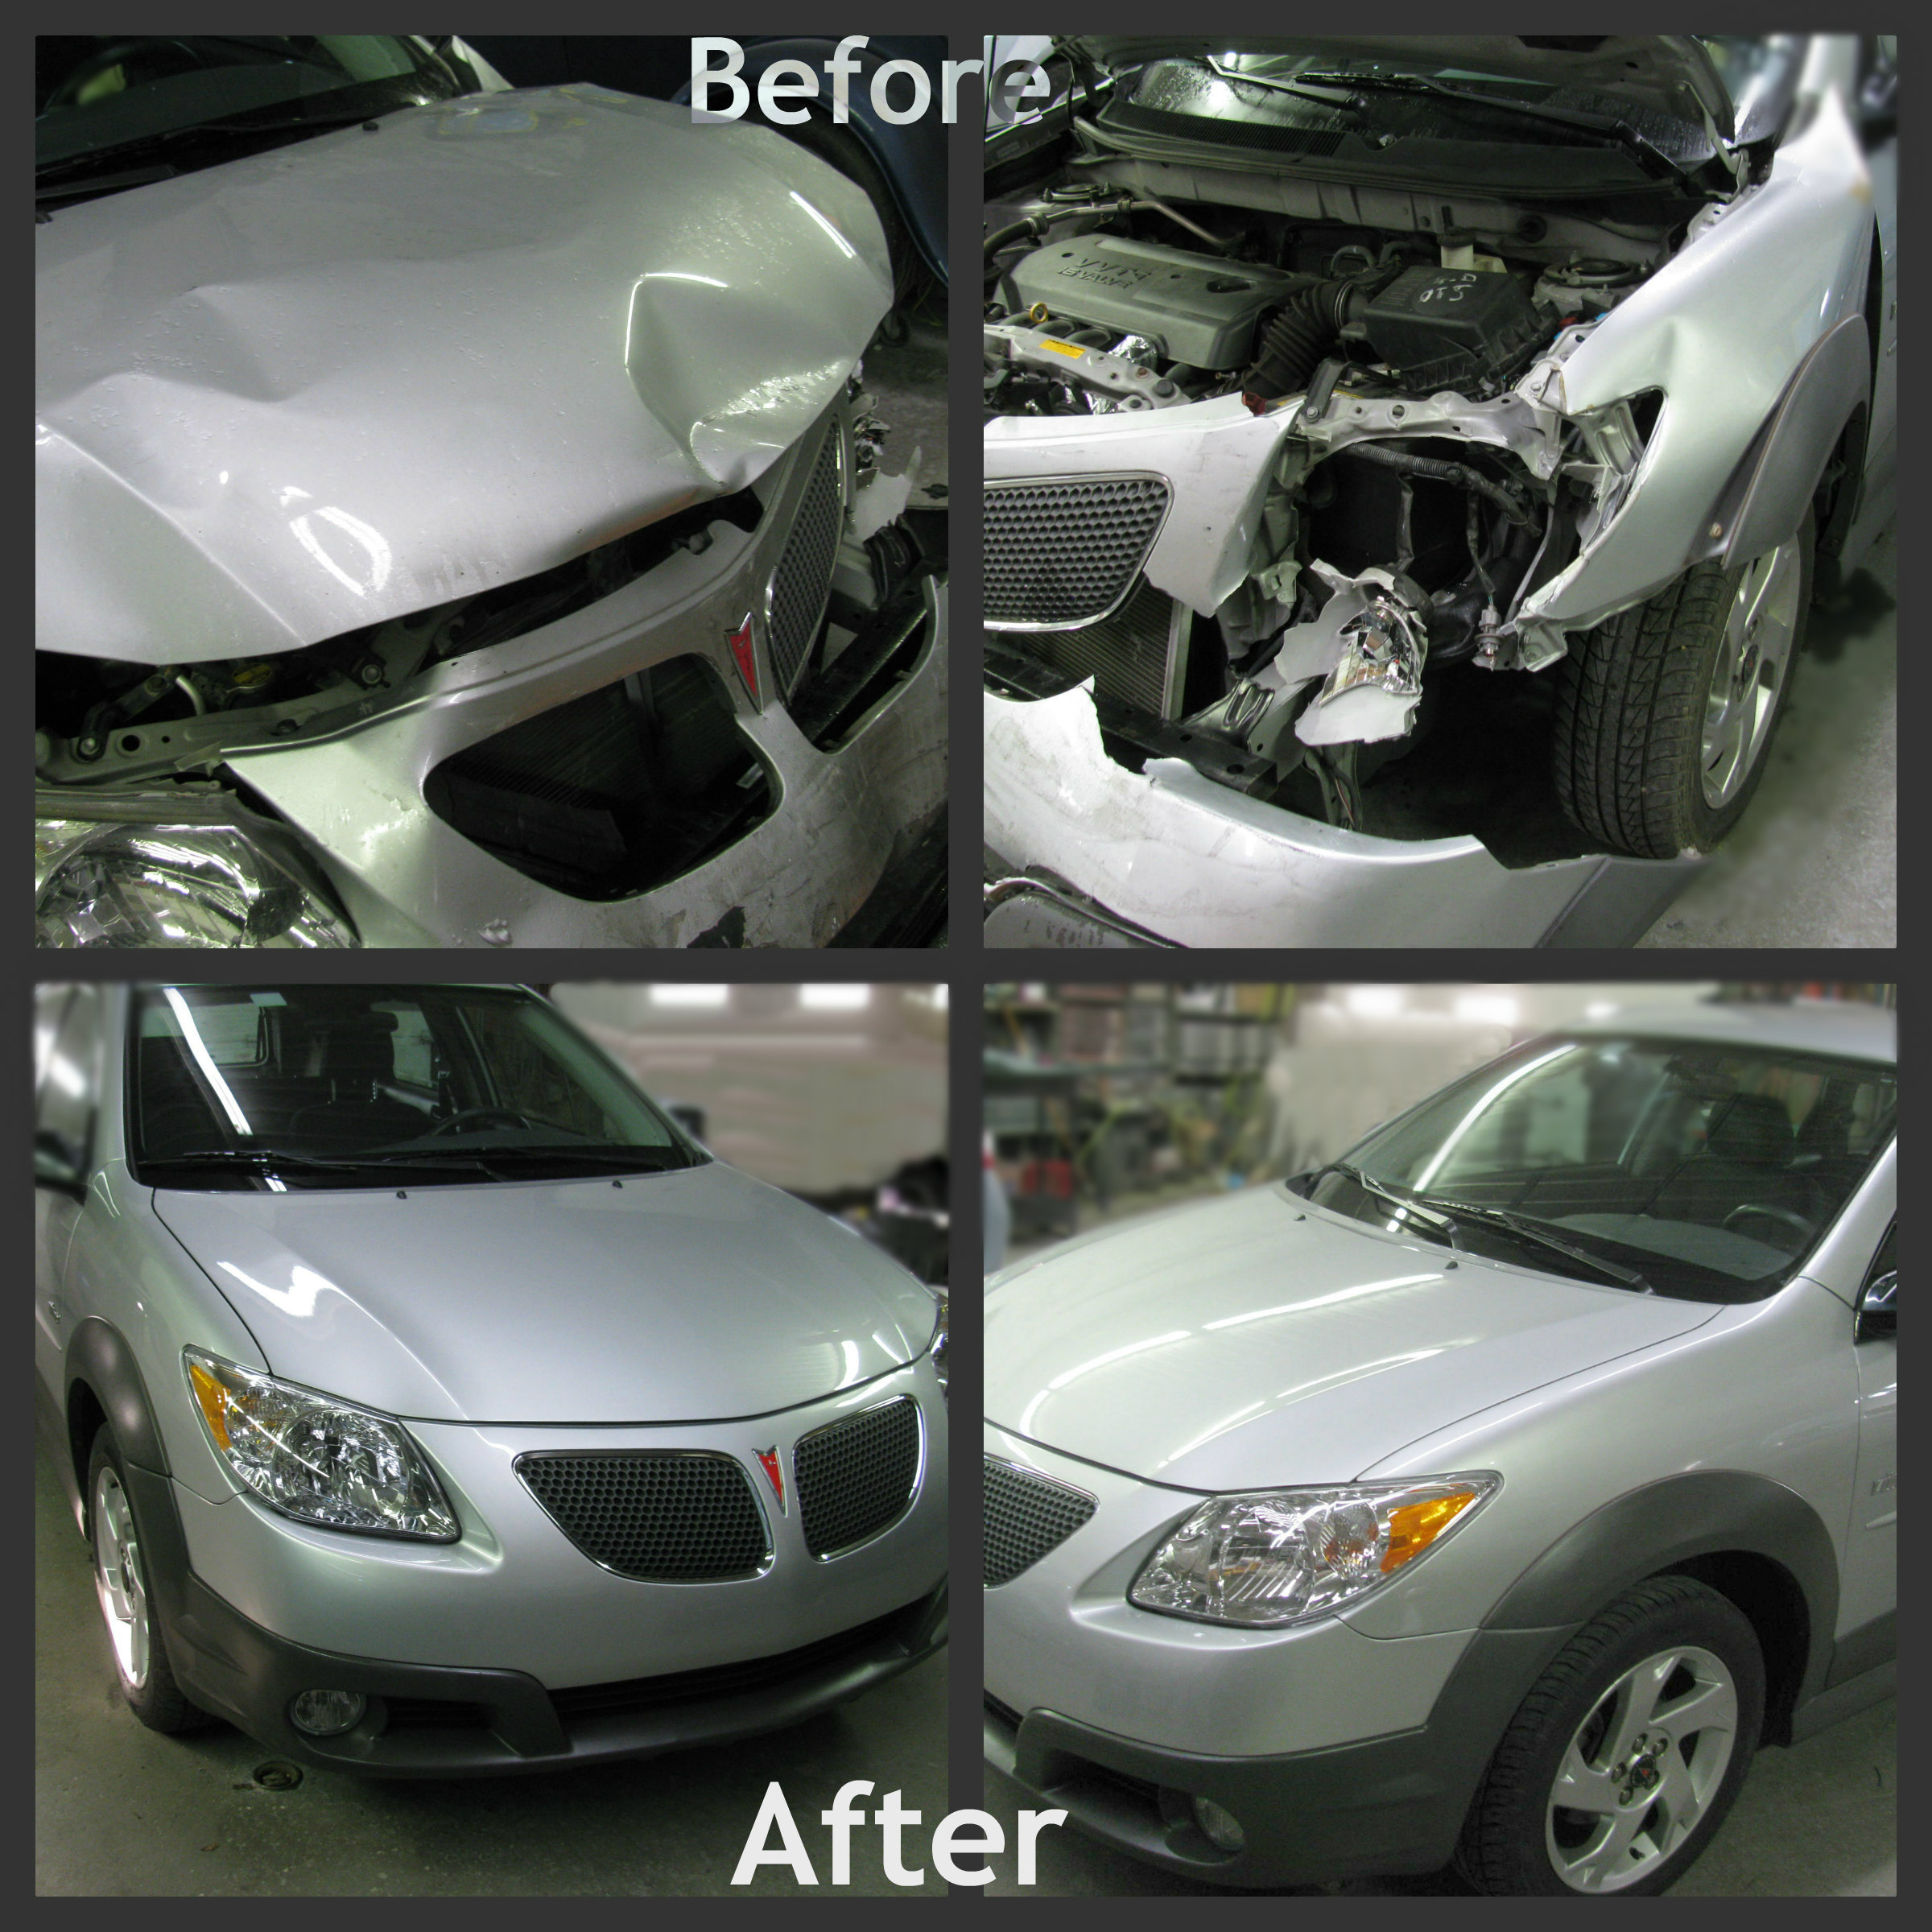 before and after photos of a 2010 pontiac GMC strung together as a collage.